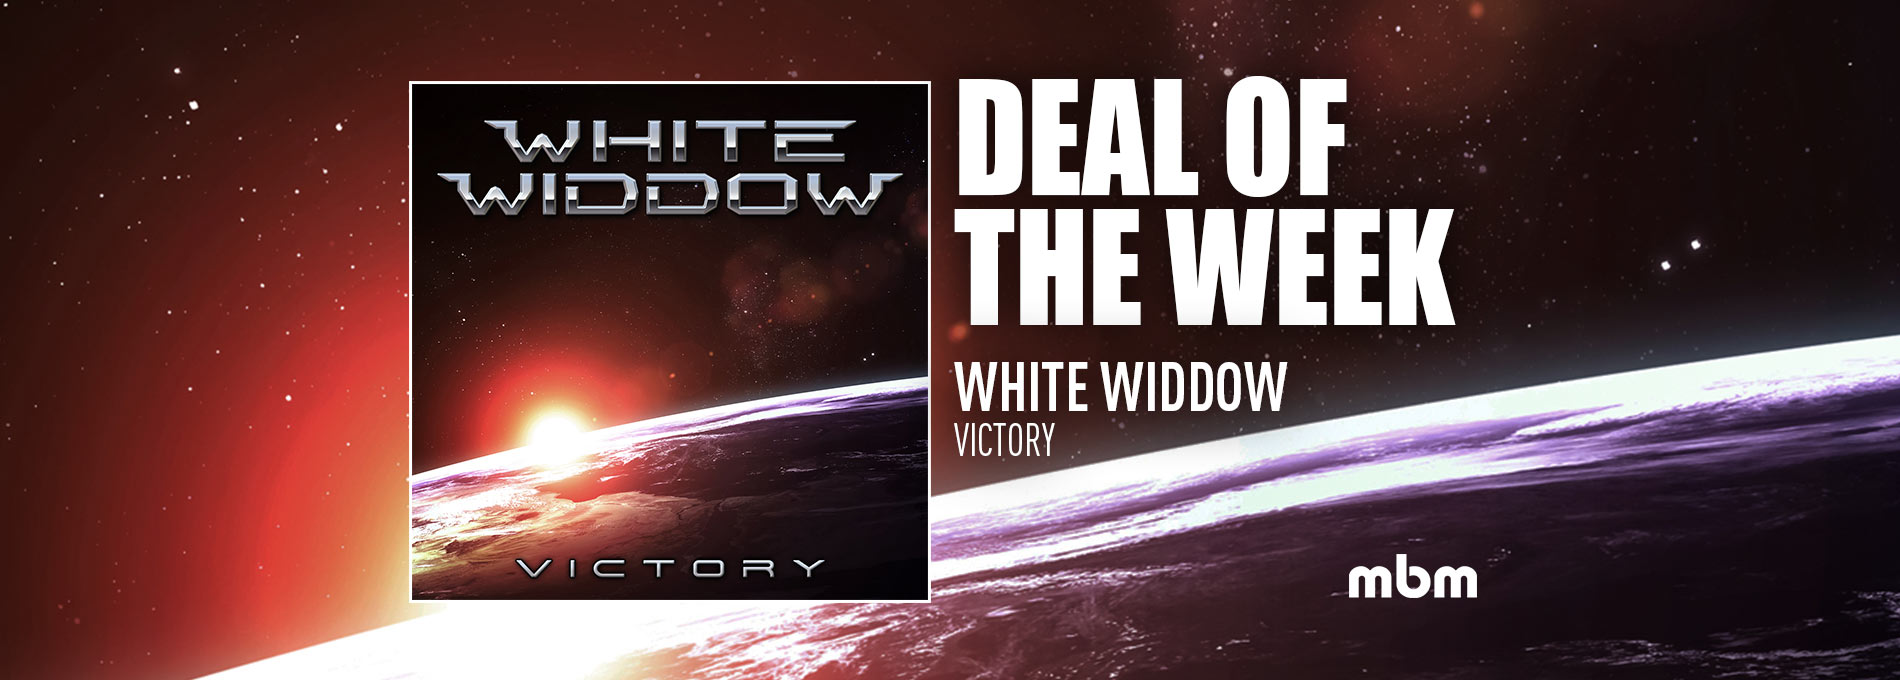 Deal Of The Week: WHITE WIDDOW - Victory